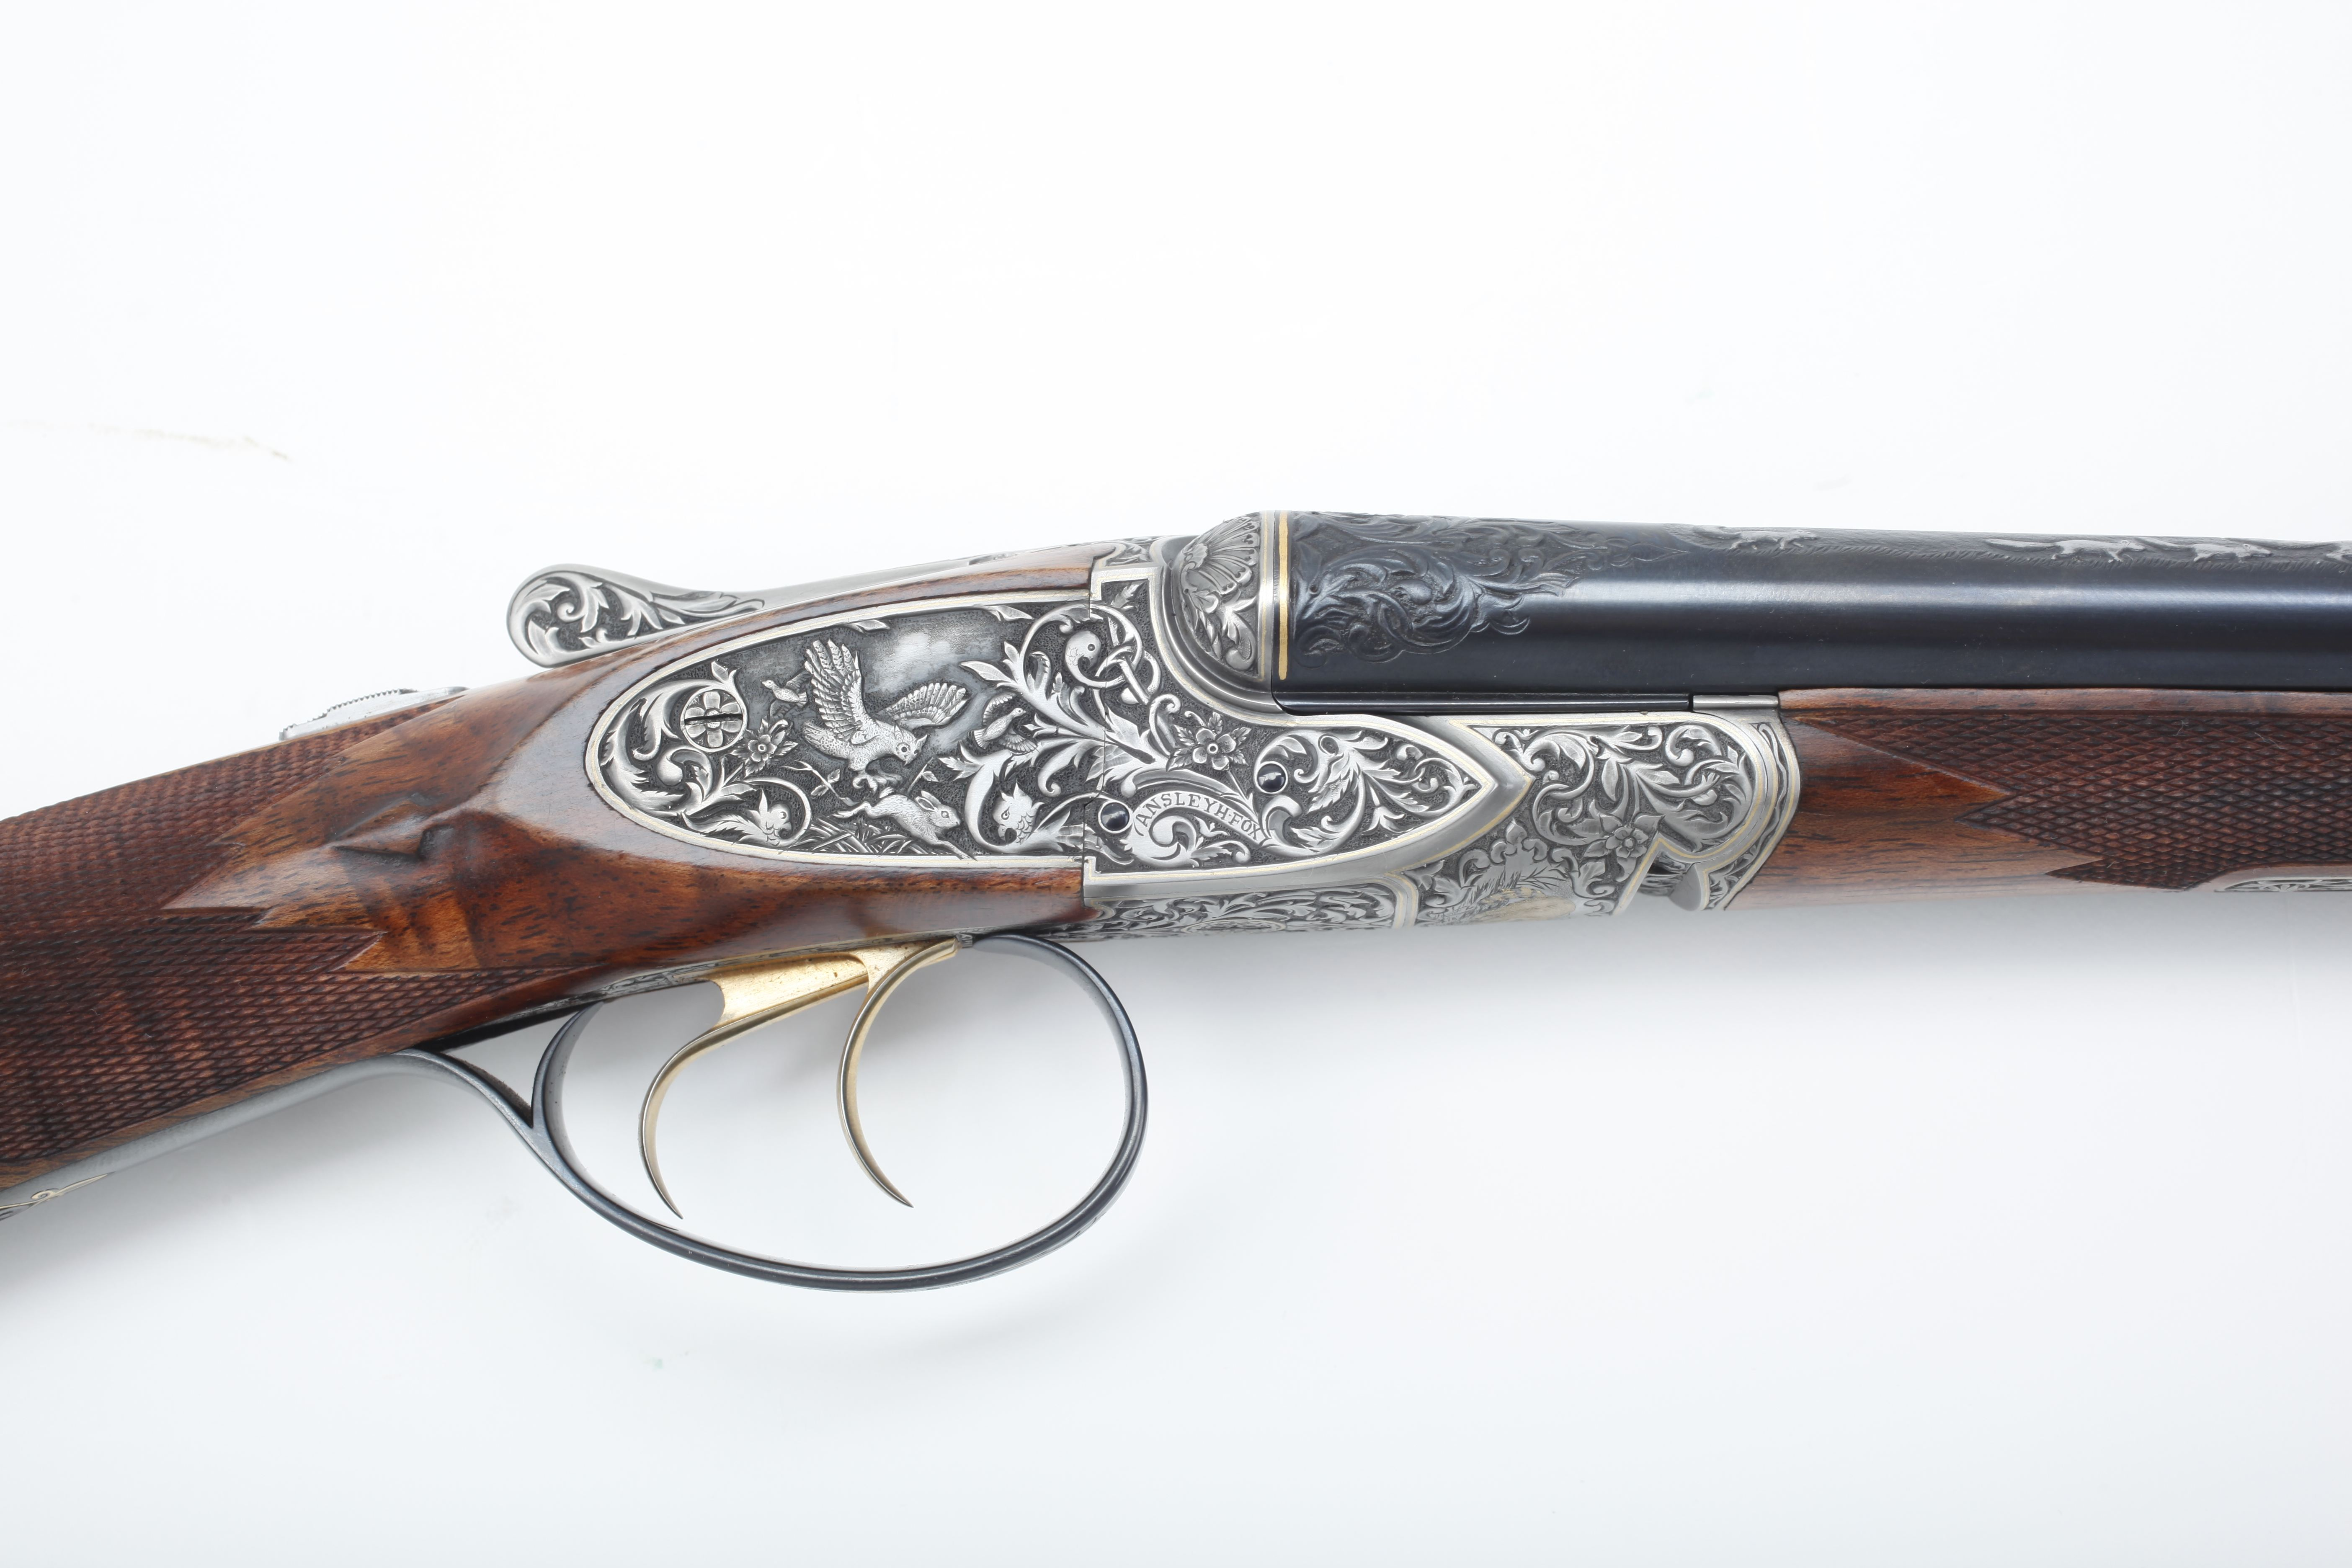 Galazan A.H. Fox Double Rifle - .22 cal.